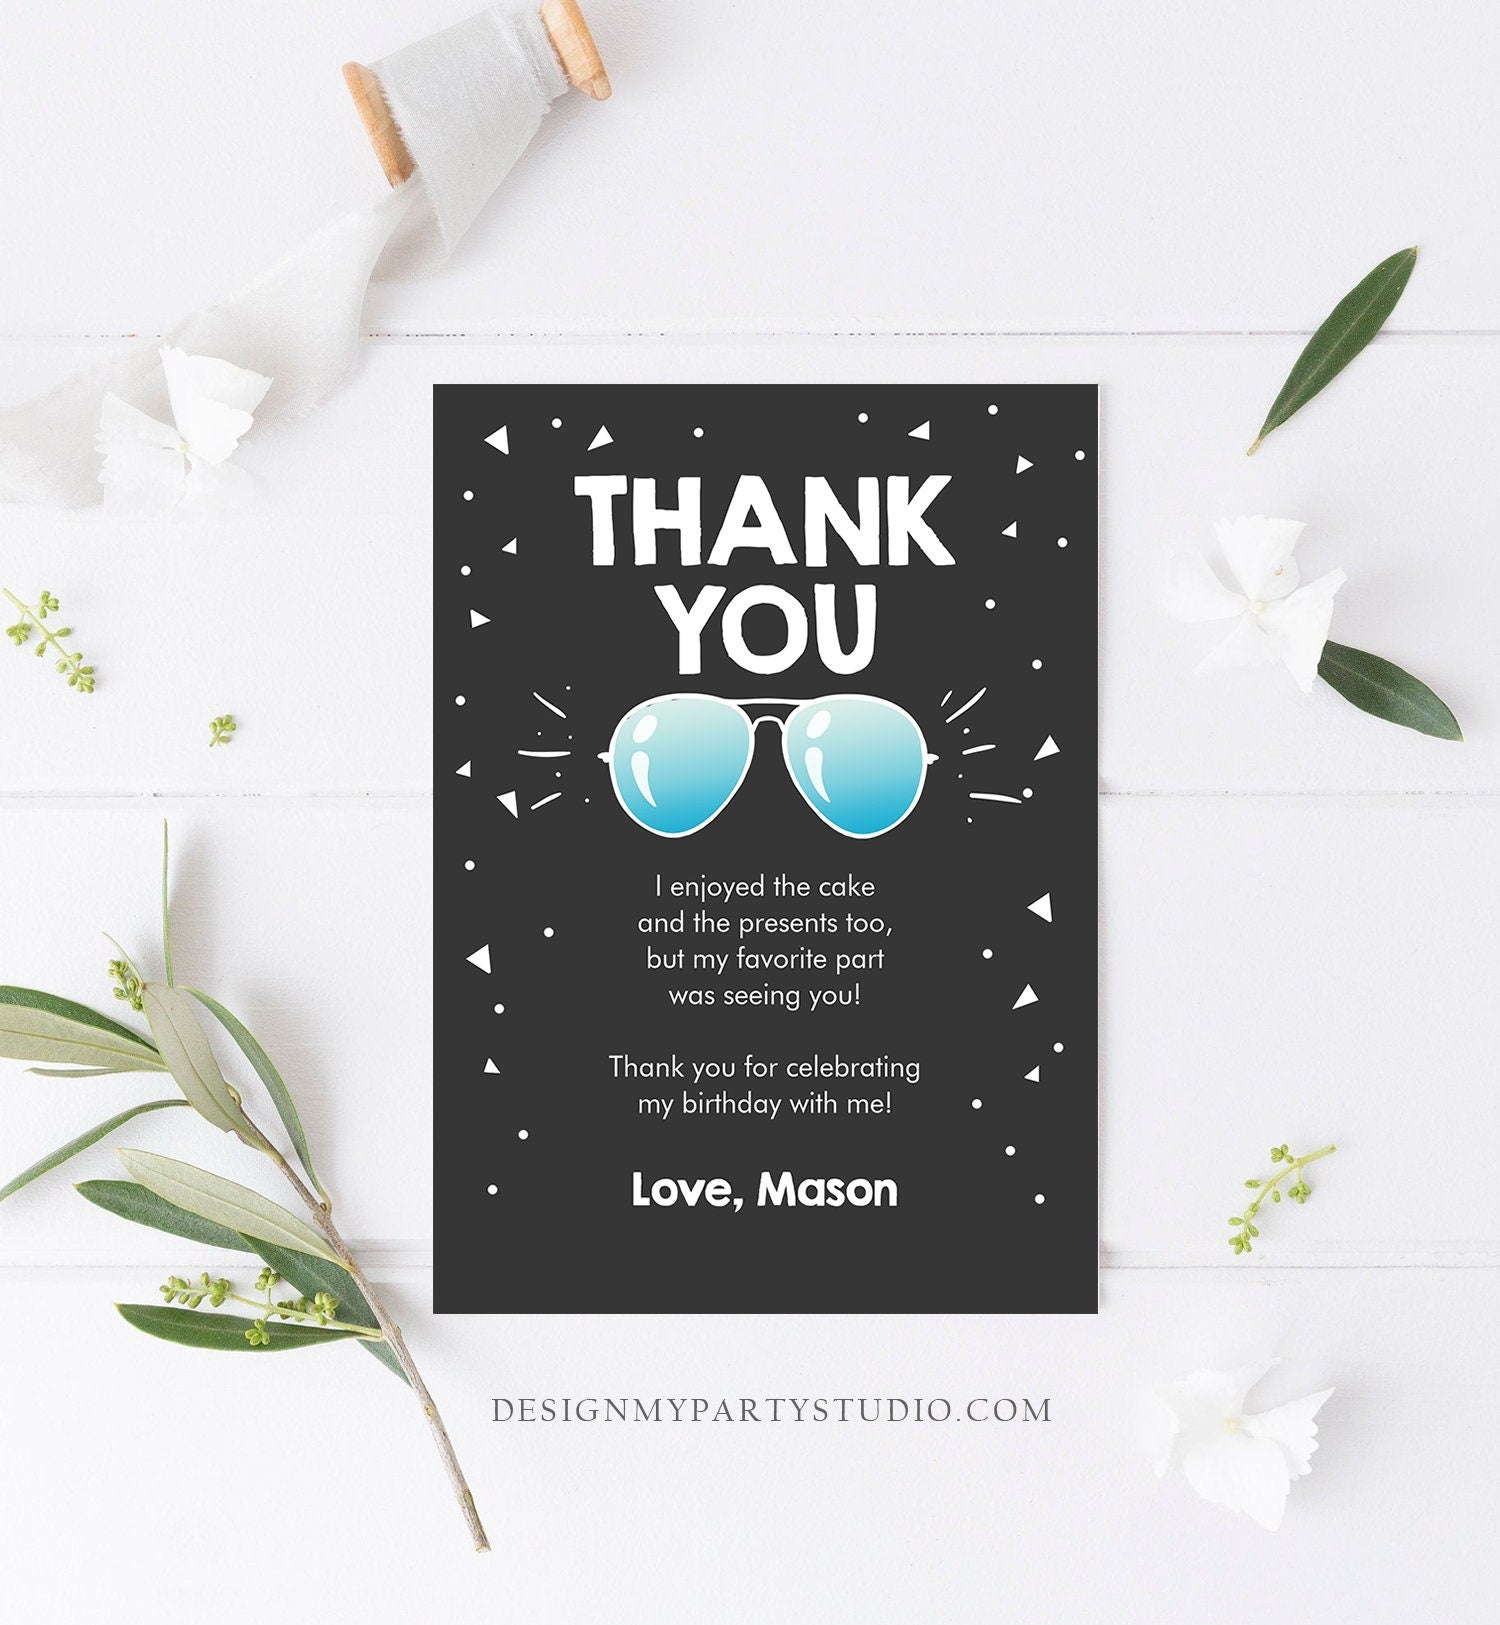 Editable Thank You Card Two Cool Birthday Boy Pilot Sunglasses Second Birthday Party Note 2nd White Photo Corjl Template Printable 0136